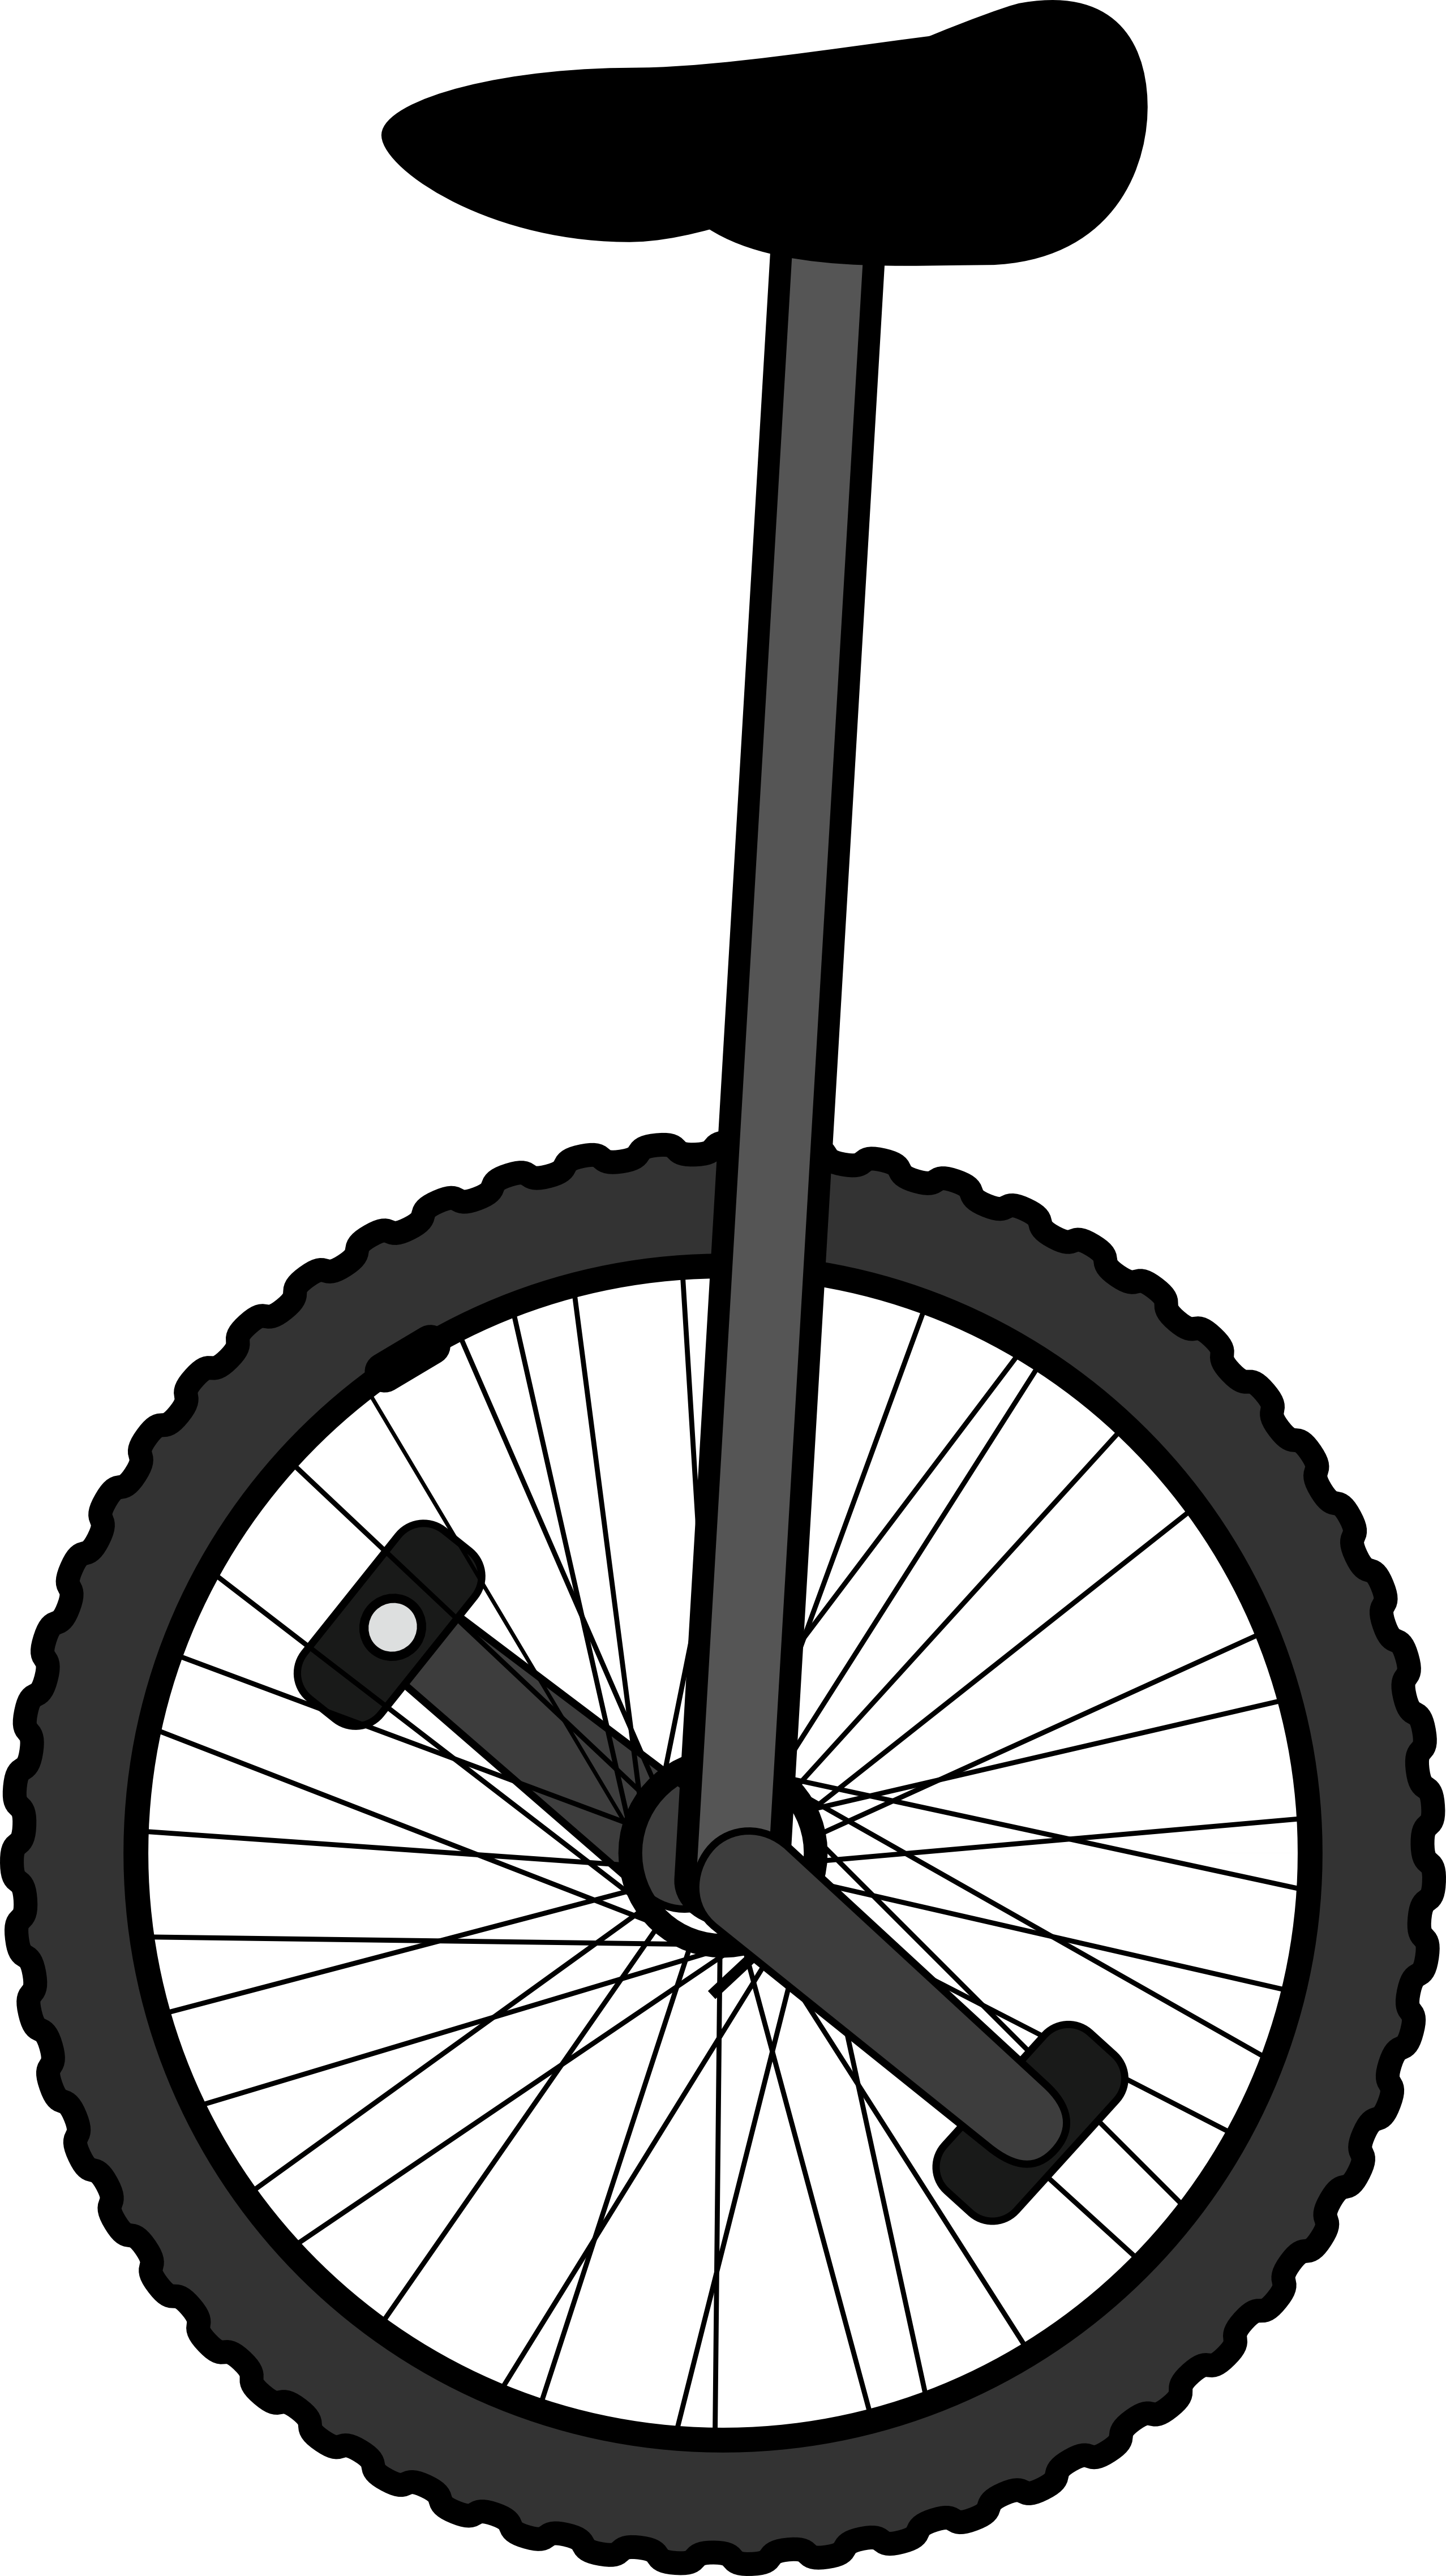 Unicycle clipart black and white clip art black and white library Unicycle clipart black and white 5 » Clipart Portal clip art black and white library